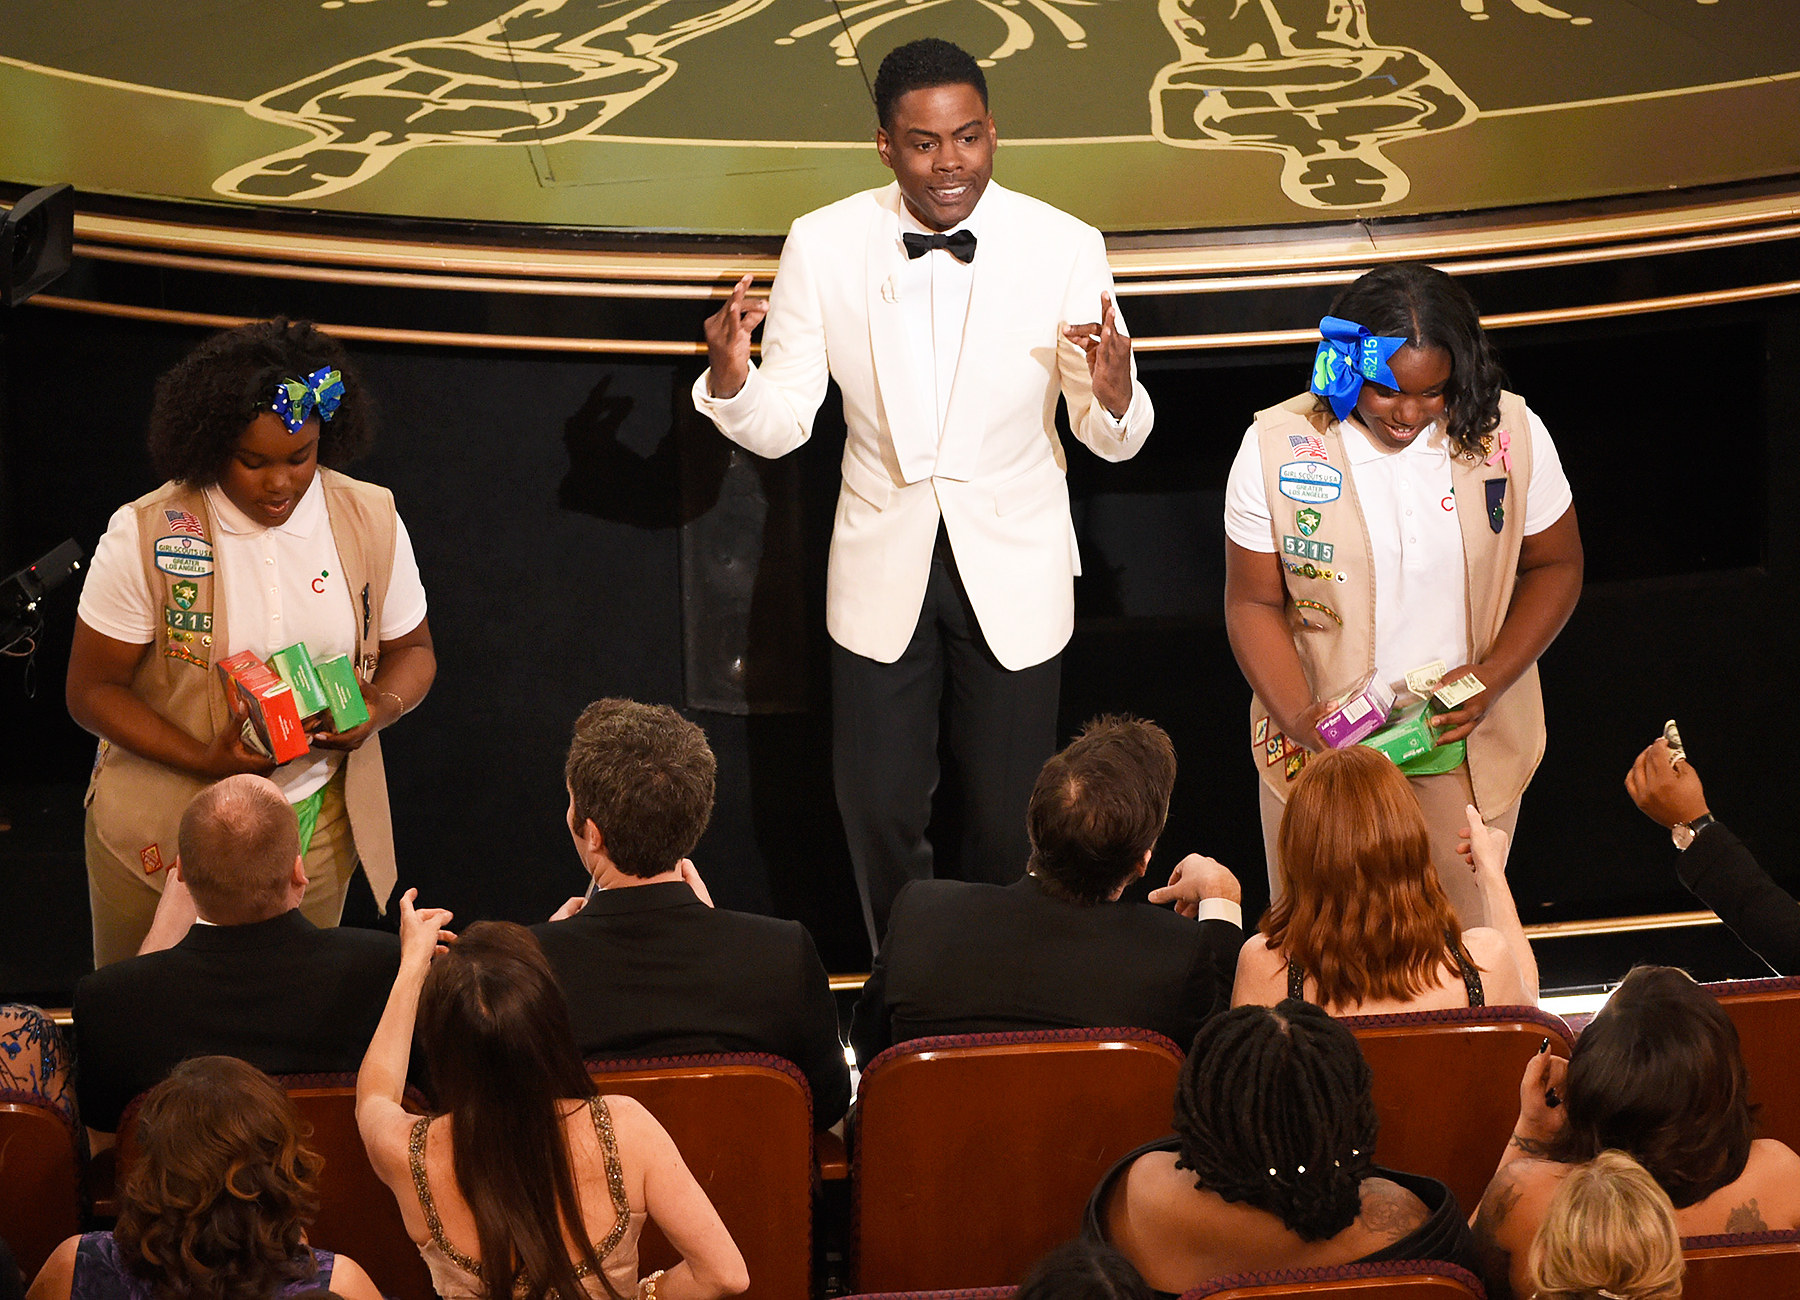 Girl Scouts and Chris Rock at Oscars 2016